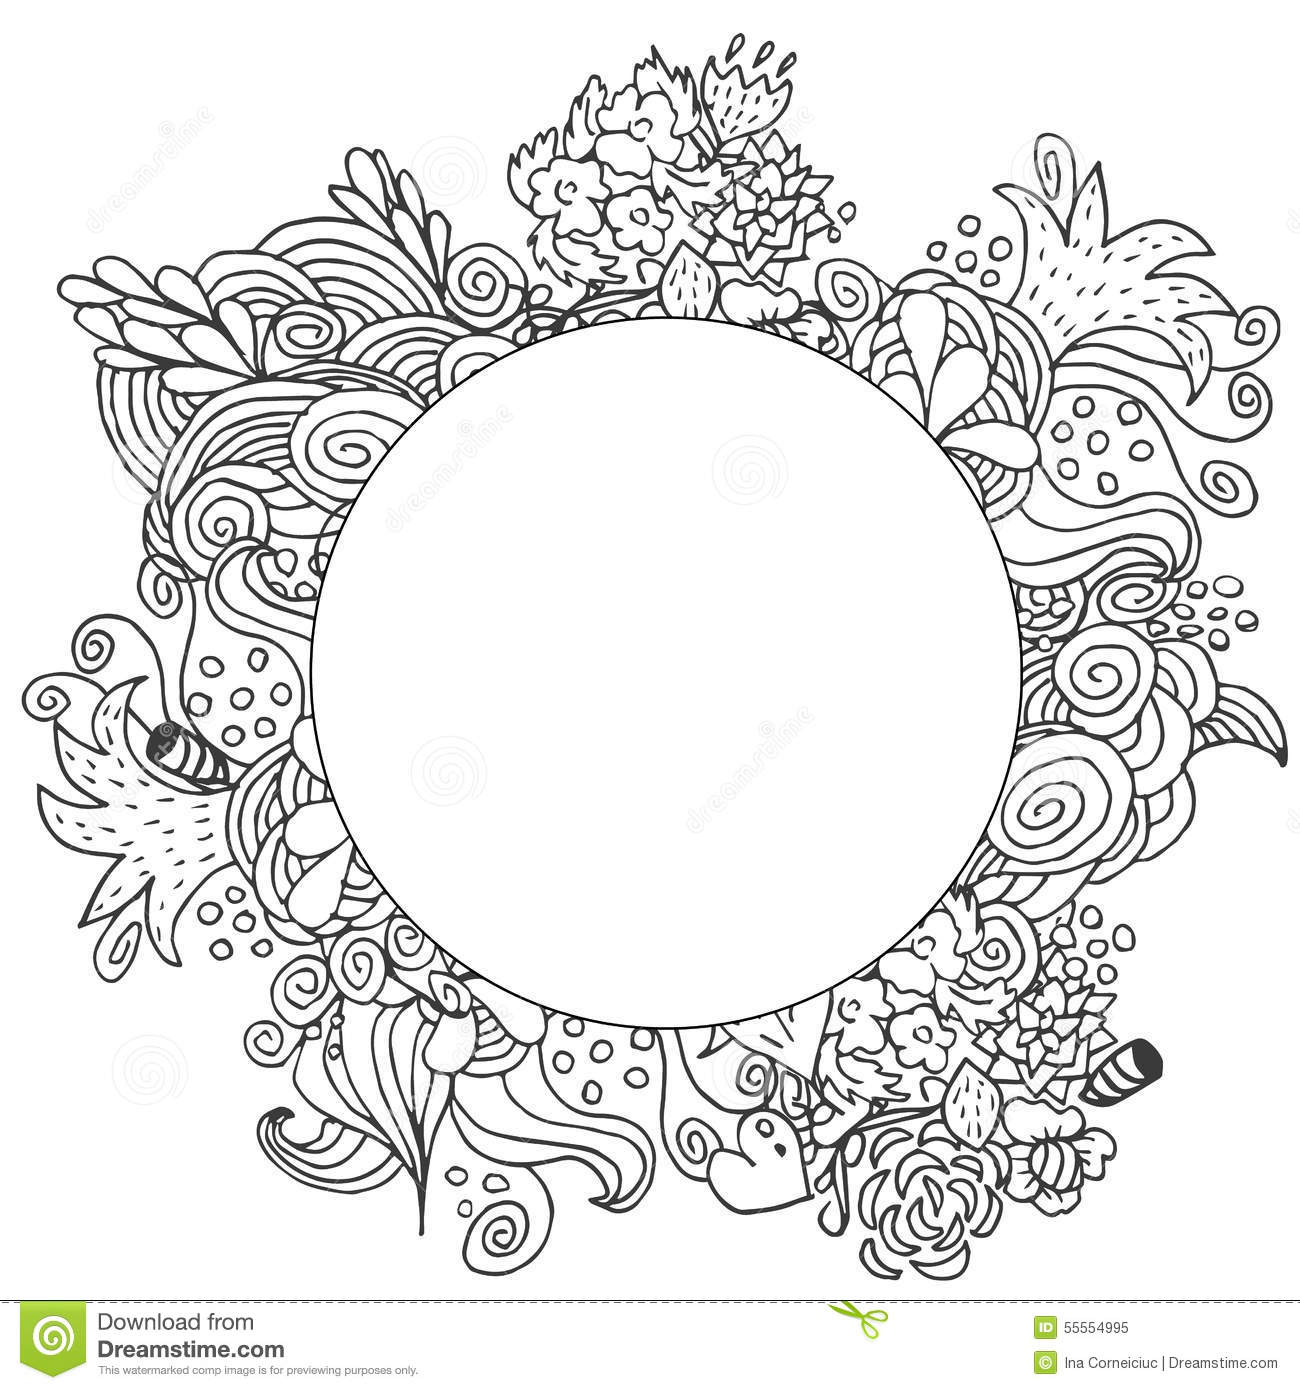 Line Art Card Design : Hand drawn floral vector doodle round monochrome card